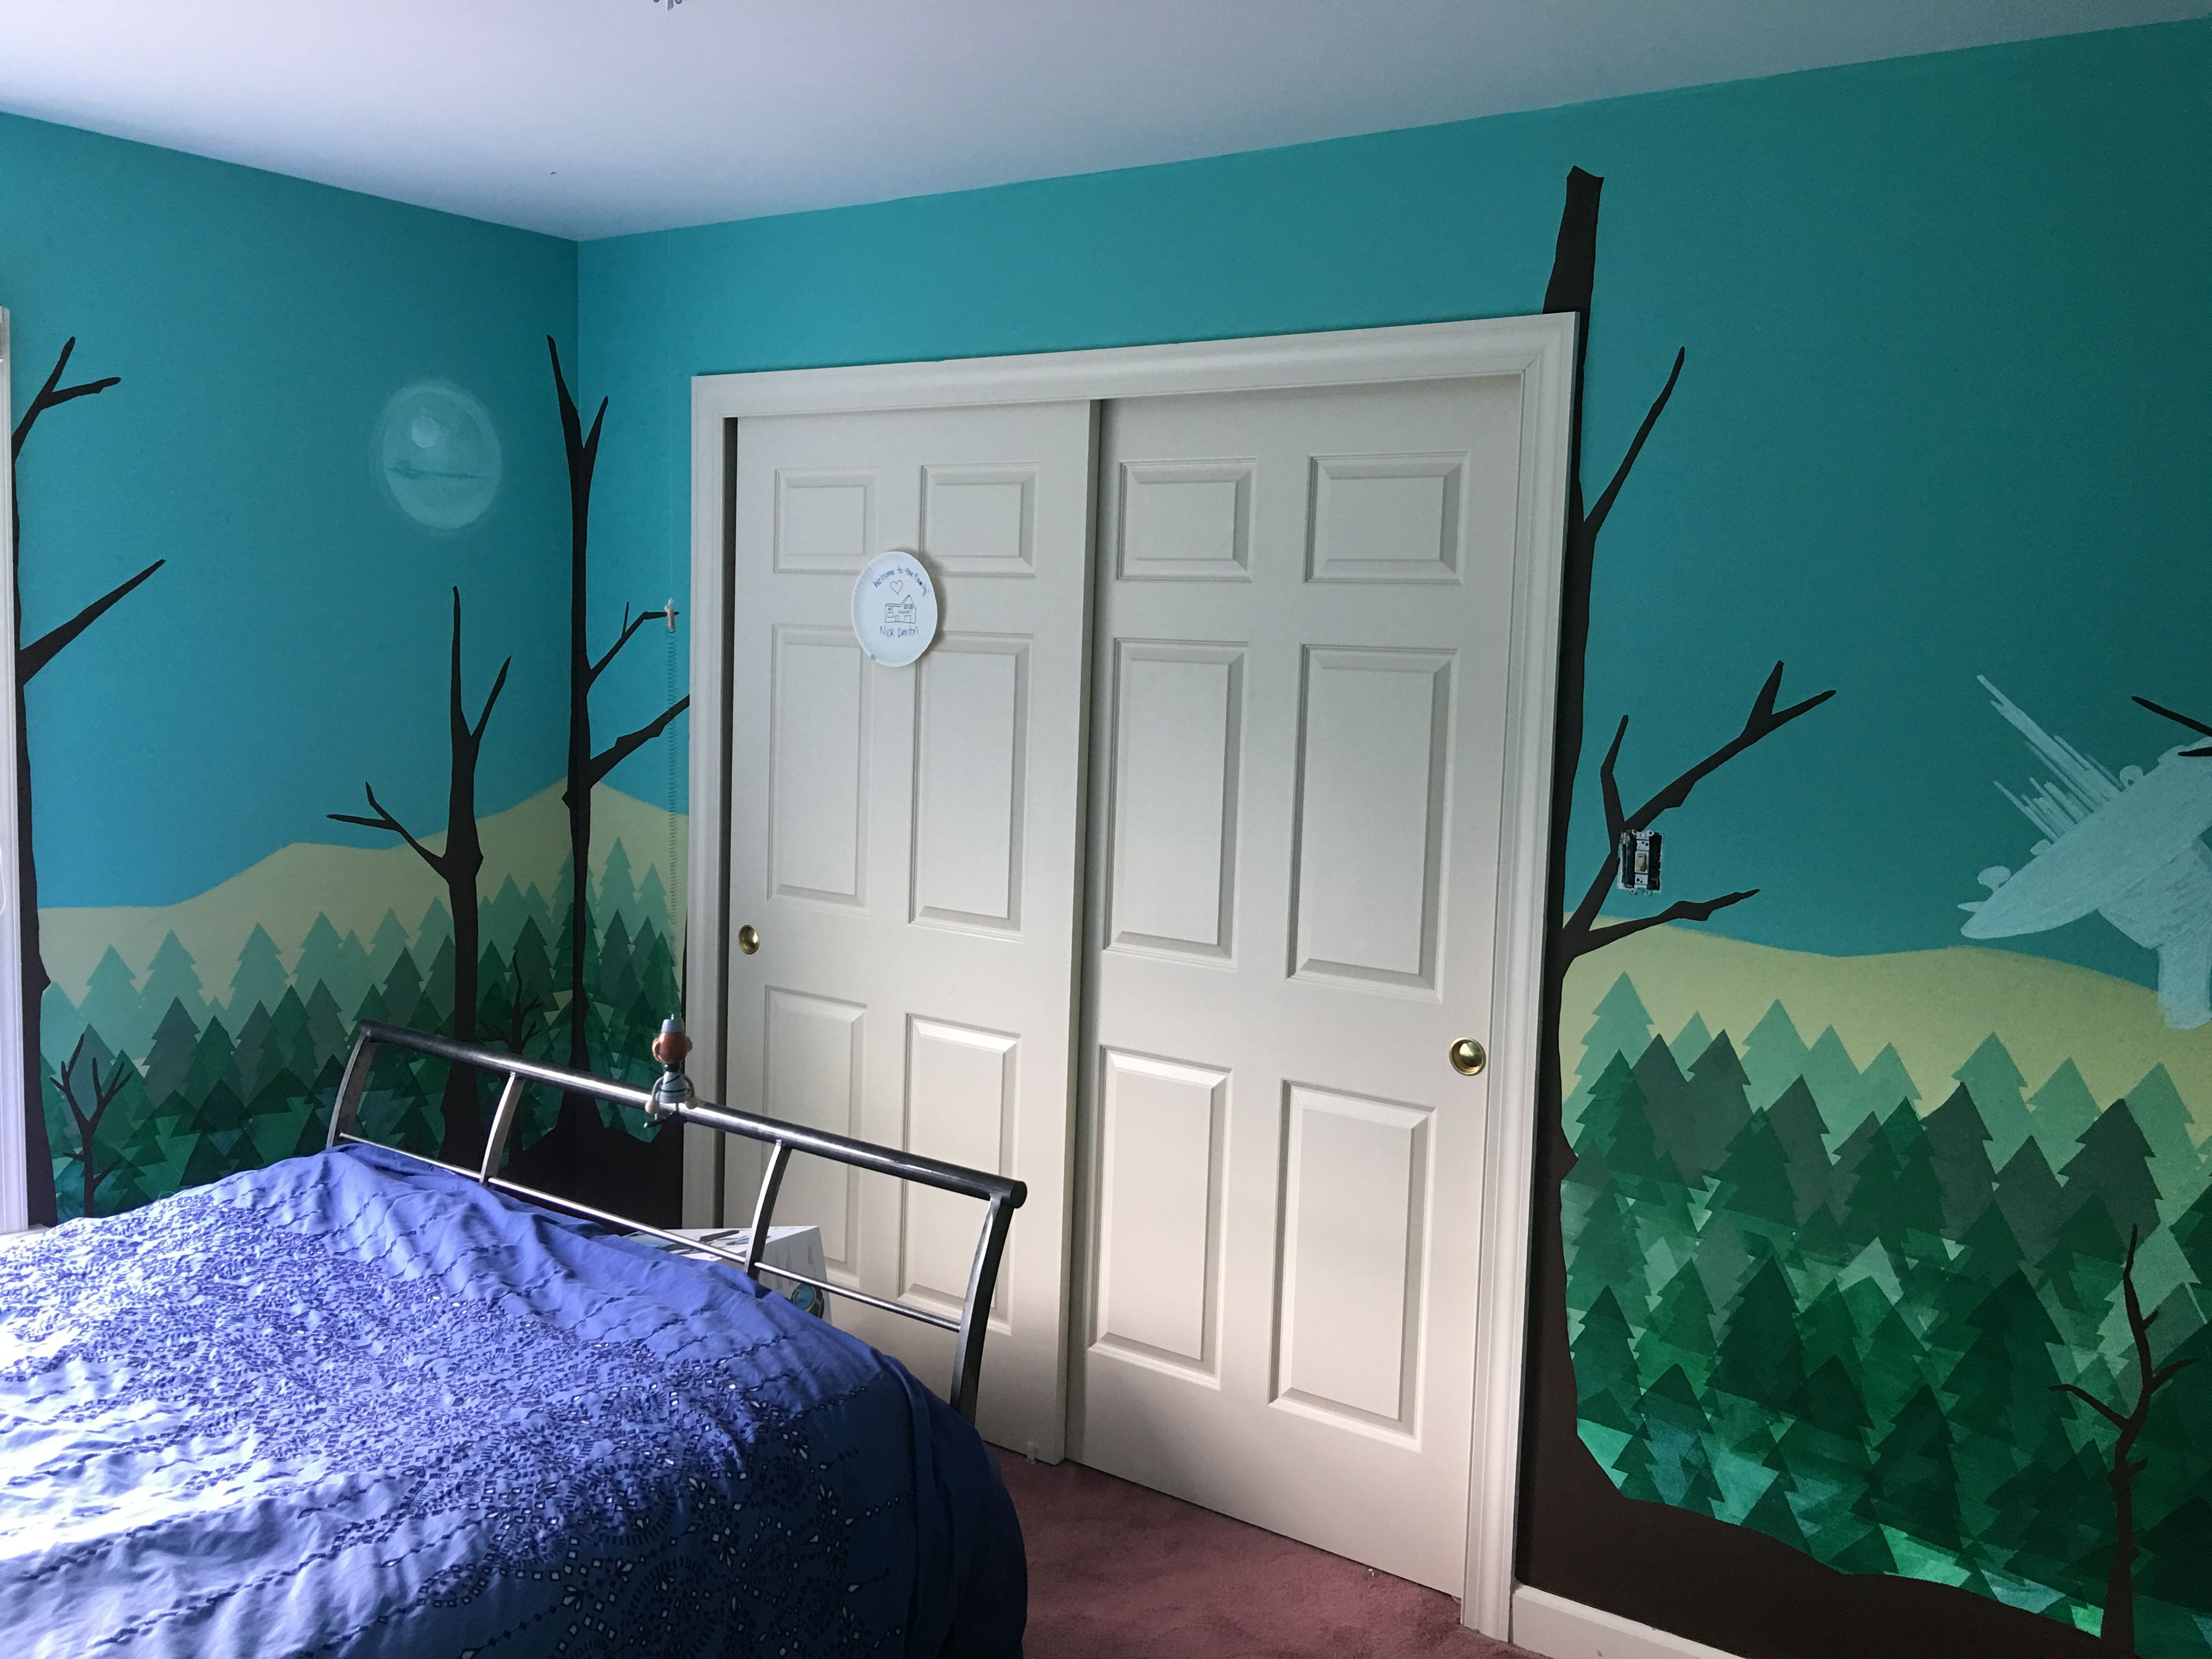 I painted this mural of Star Wars - Forest of Endor